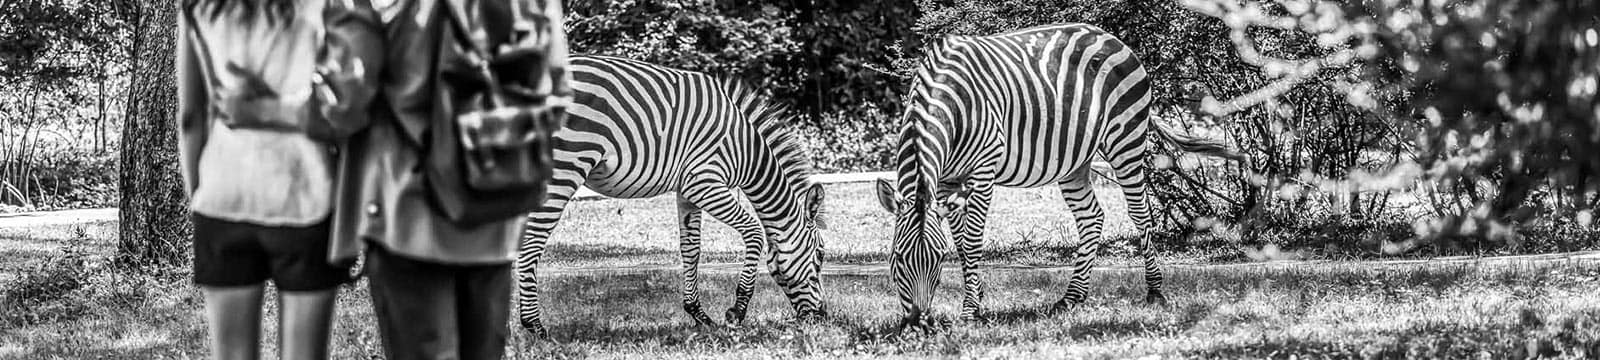 A greyscale image of a couple watching two zebras